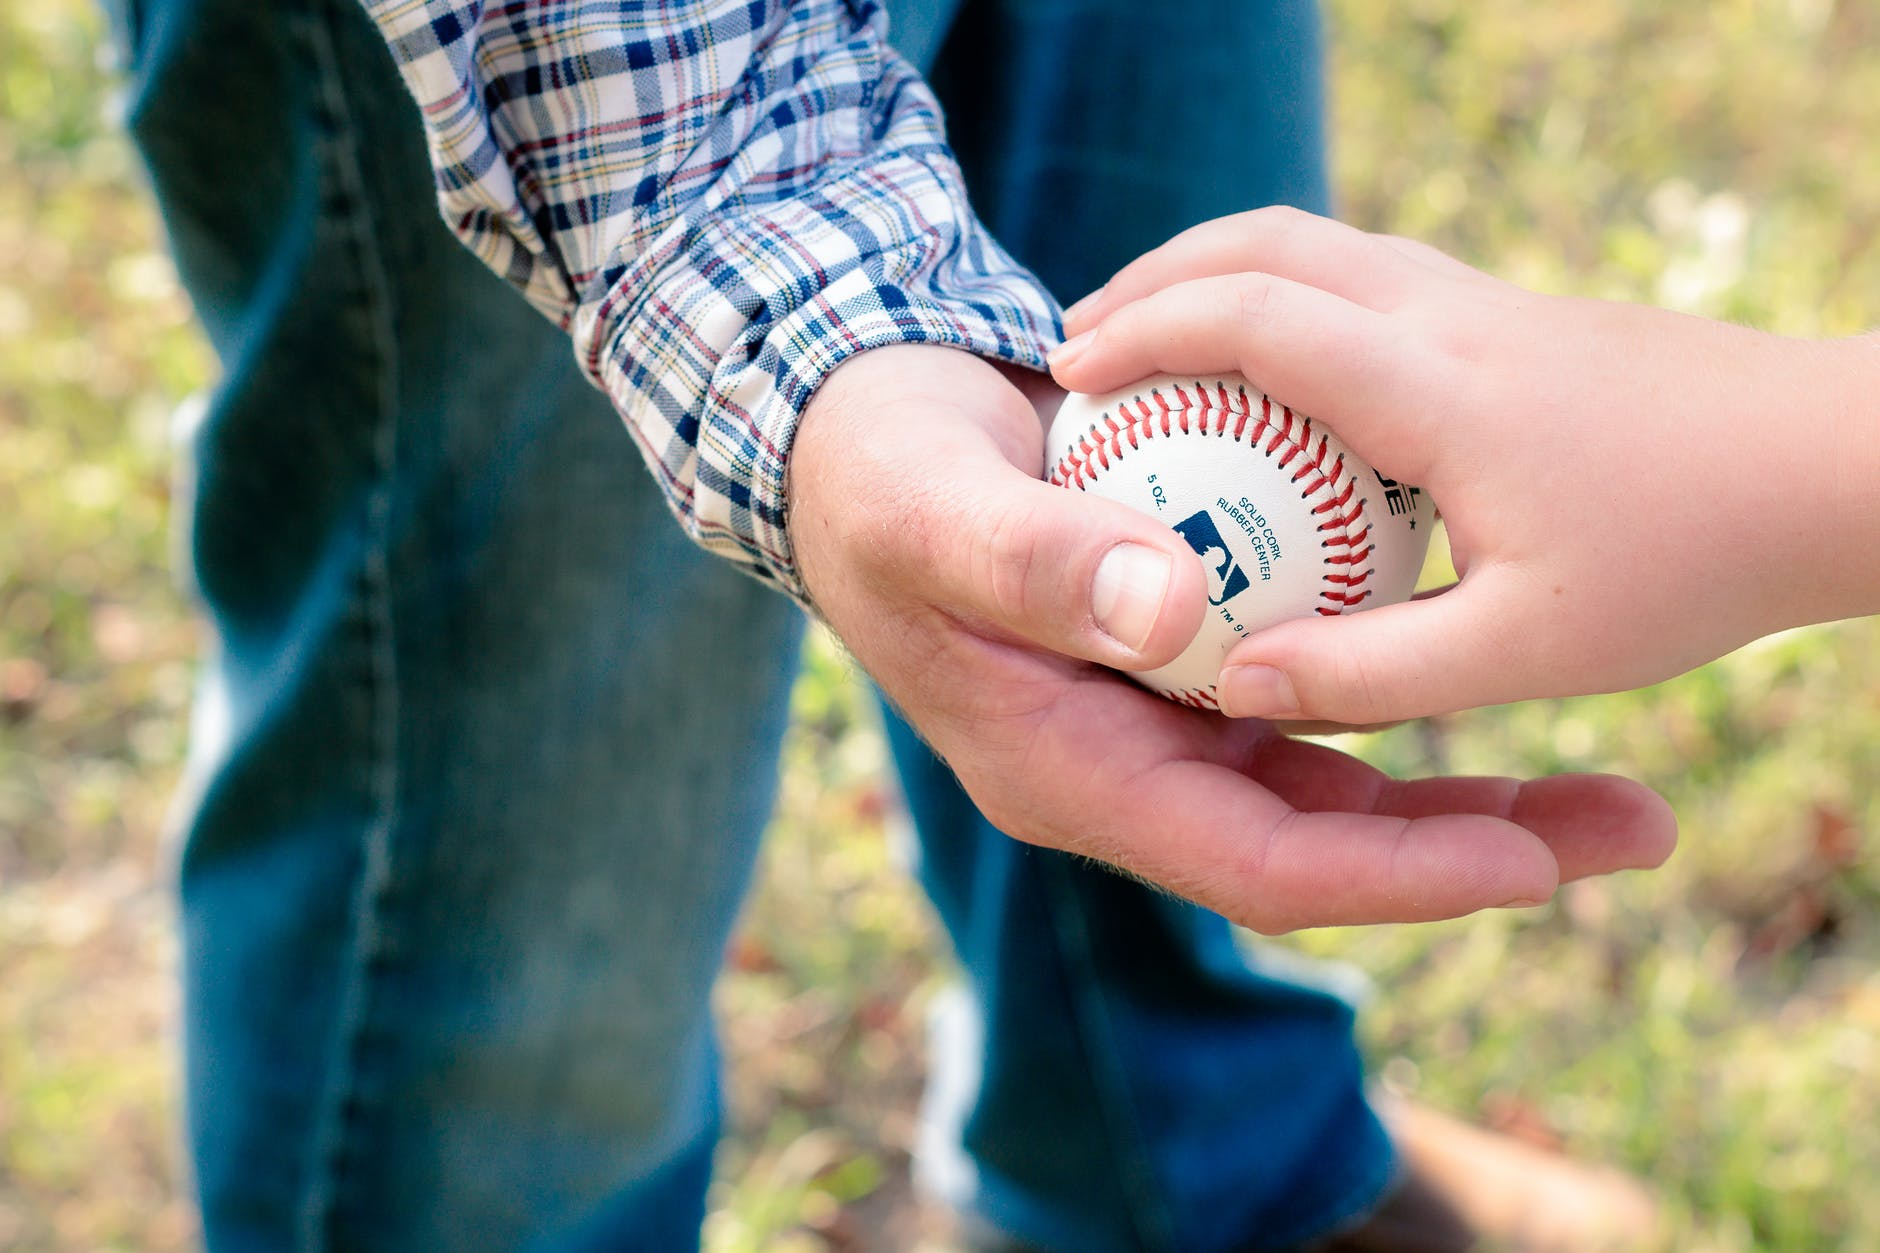 Two person holding a baseball